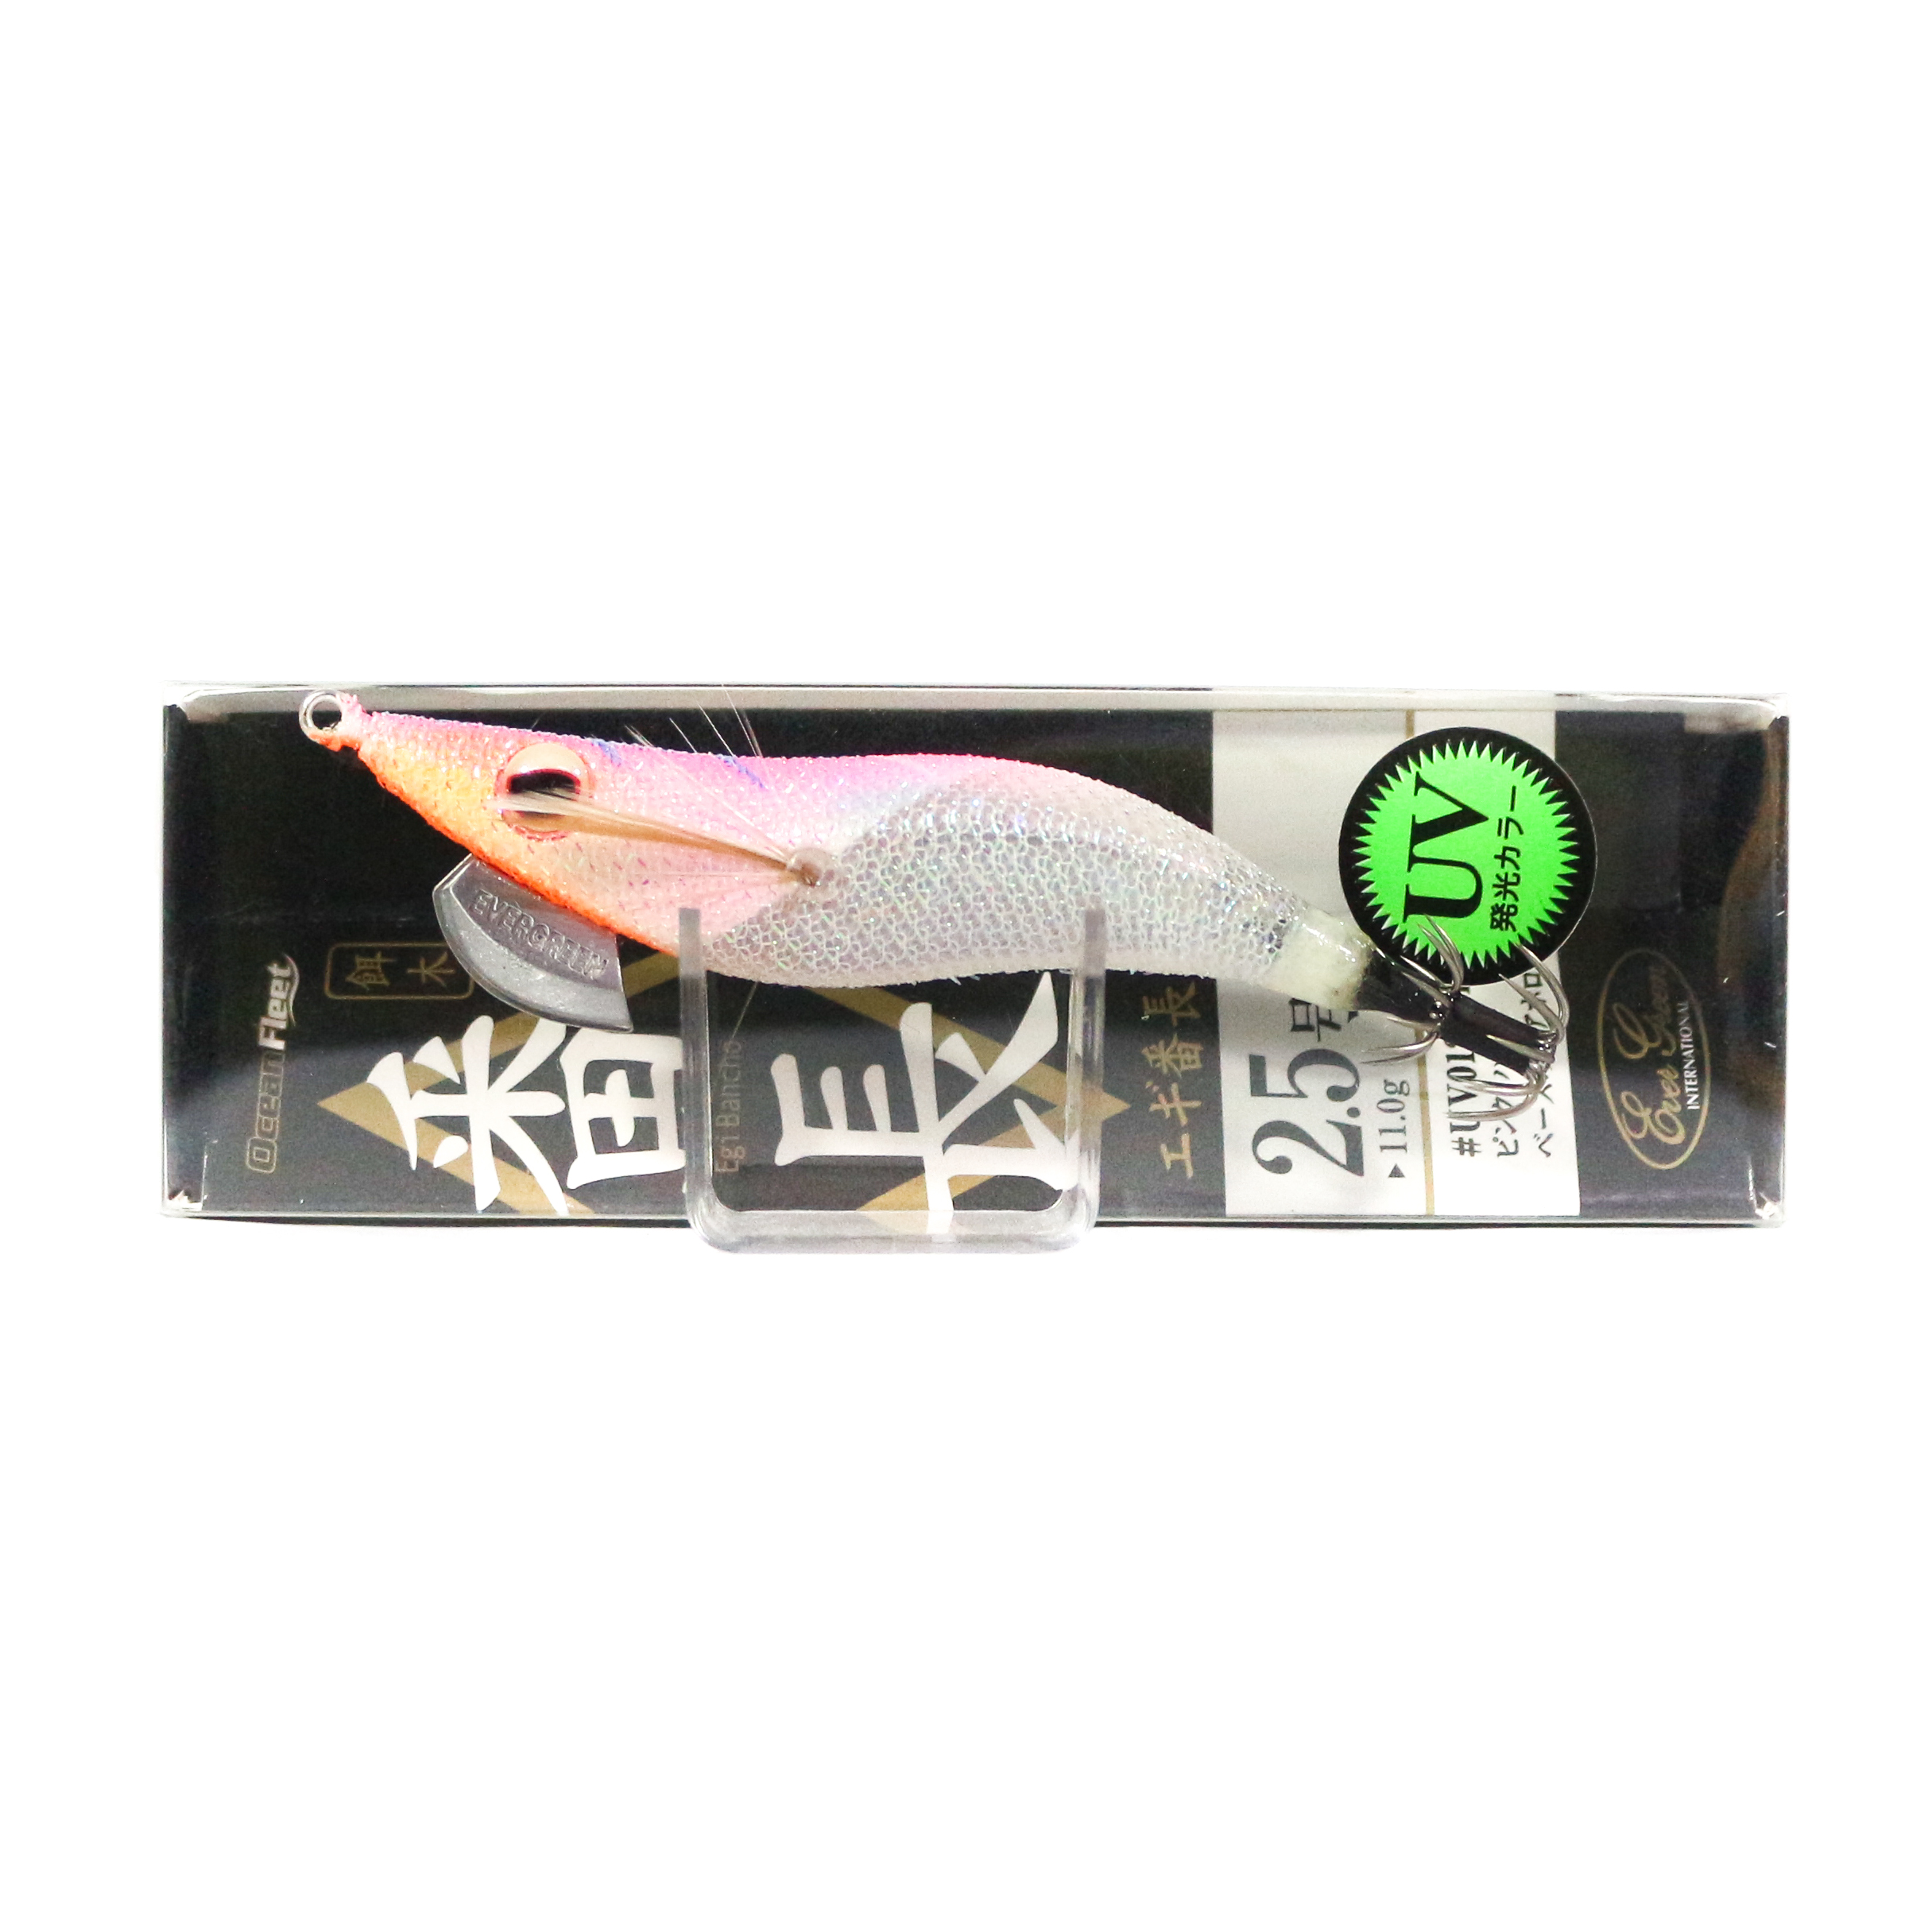 Evergreen Ocean Fleet Custom Squid Jig Lure 2.5 0120CH (2583)